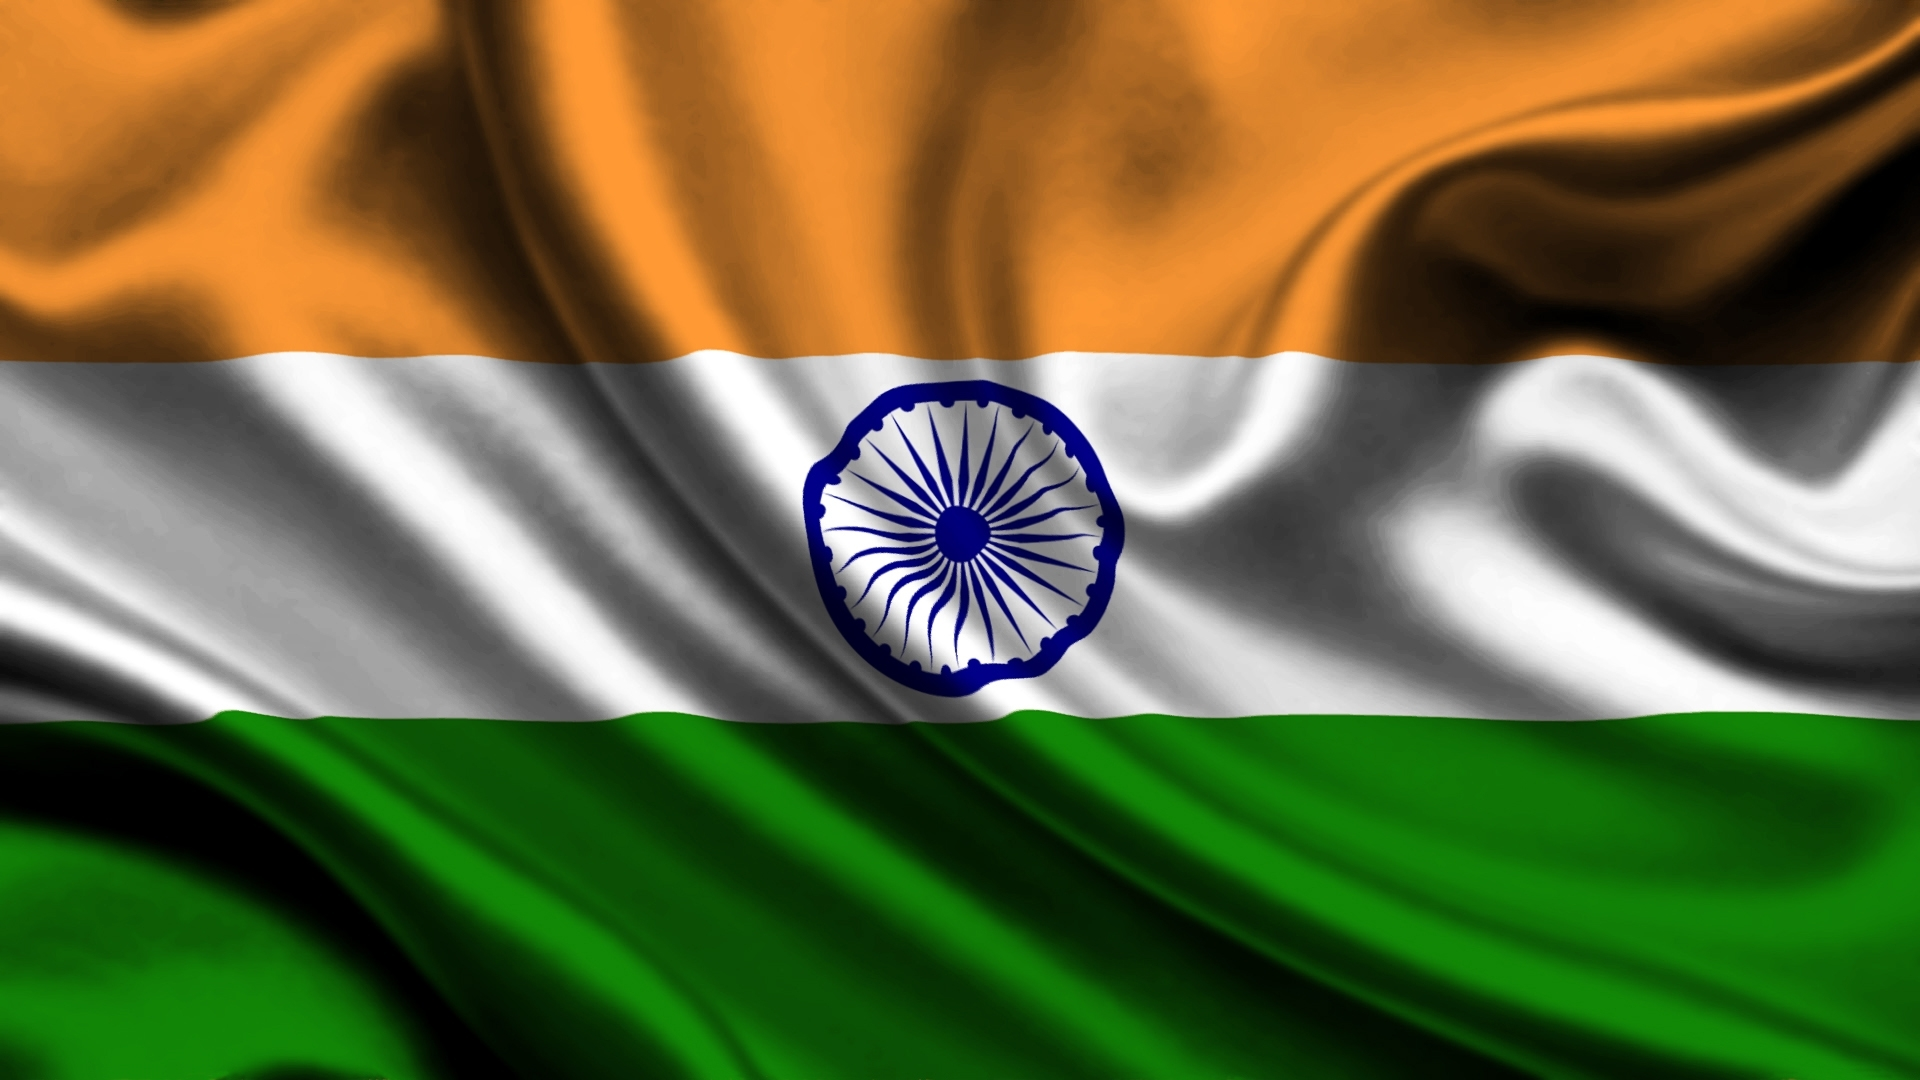 India Flag Hd 1920 X 1080: 10 Best Indian Flag Wallpaper High Resolution Hd FULL HD